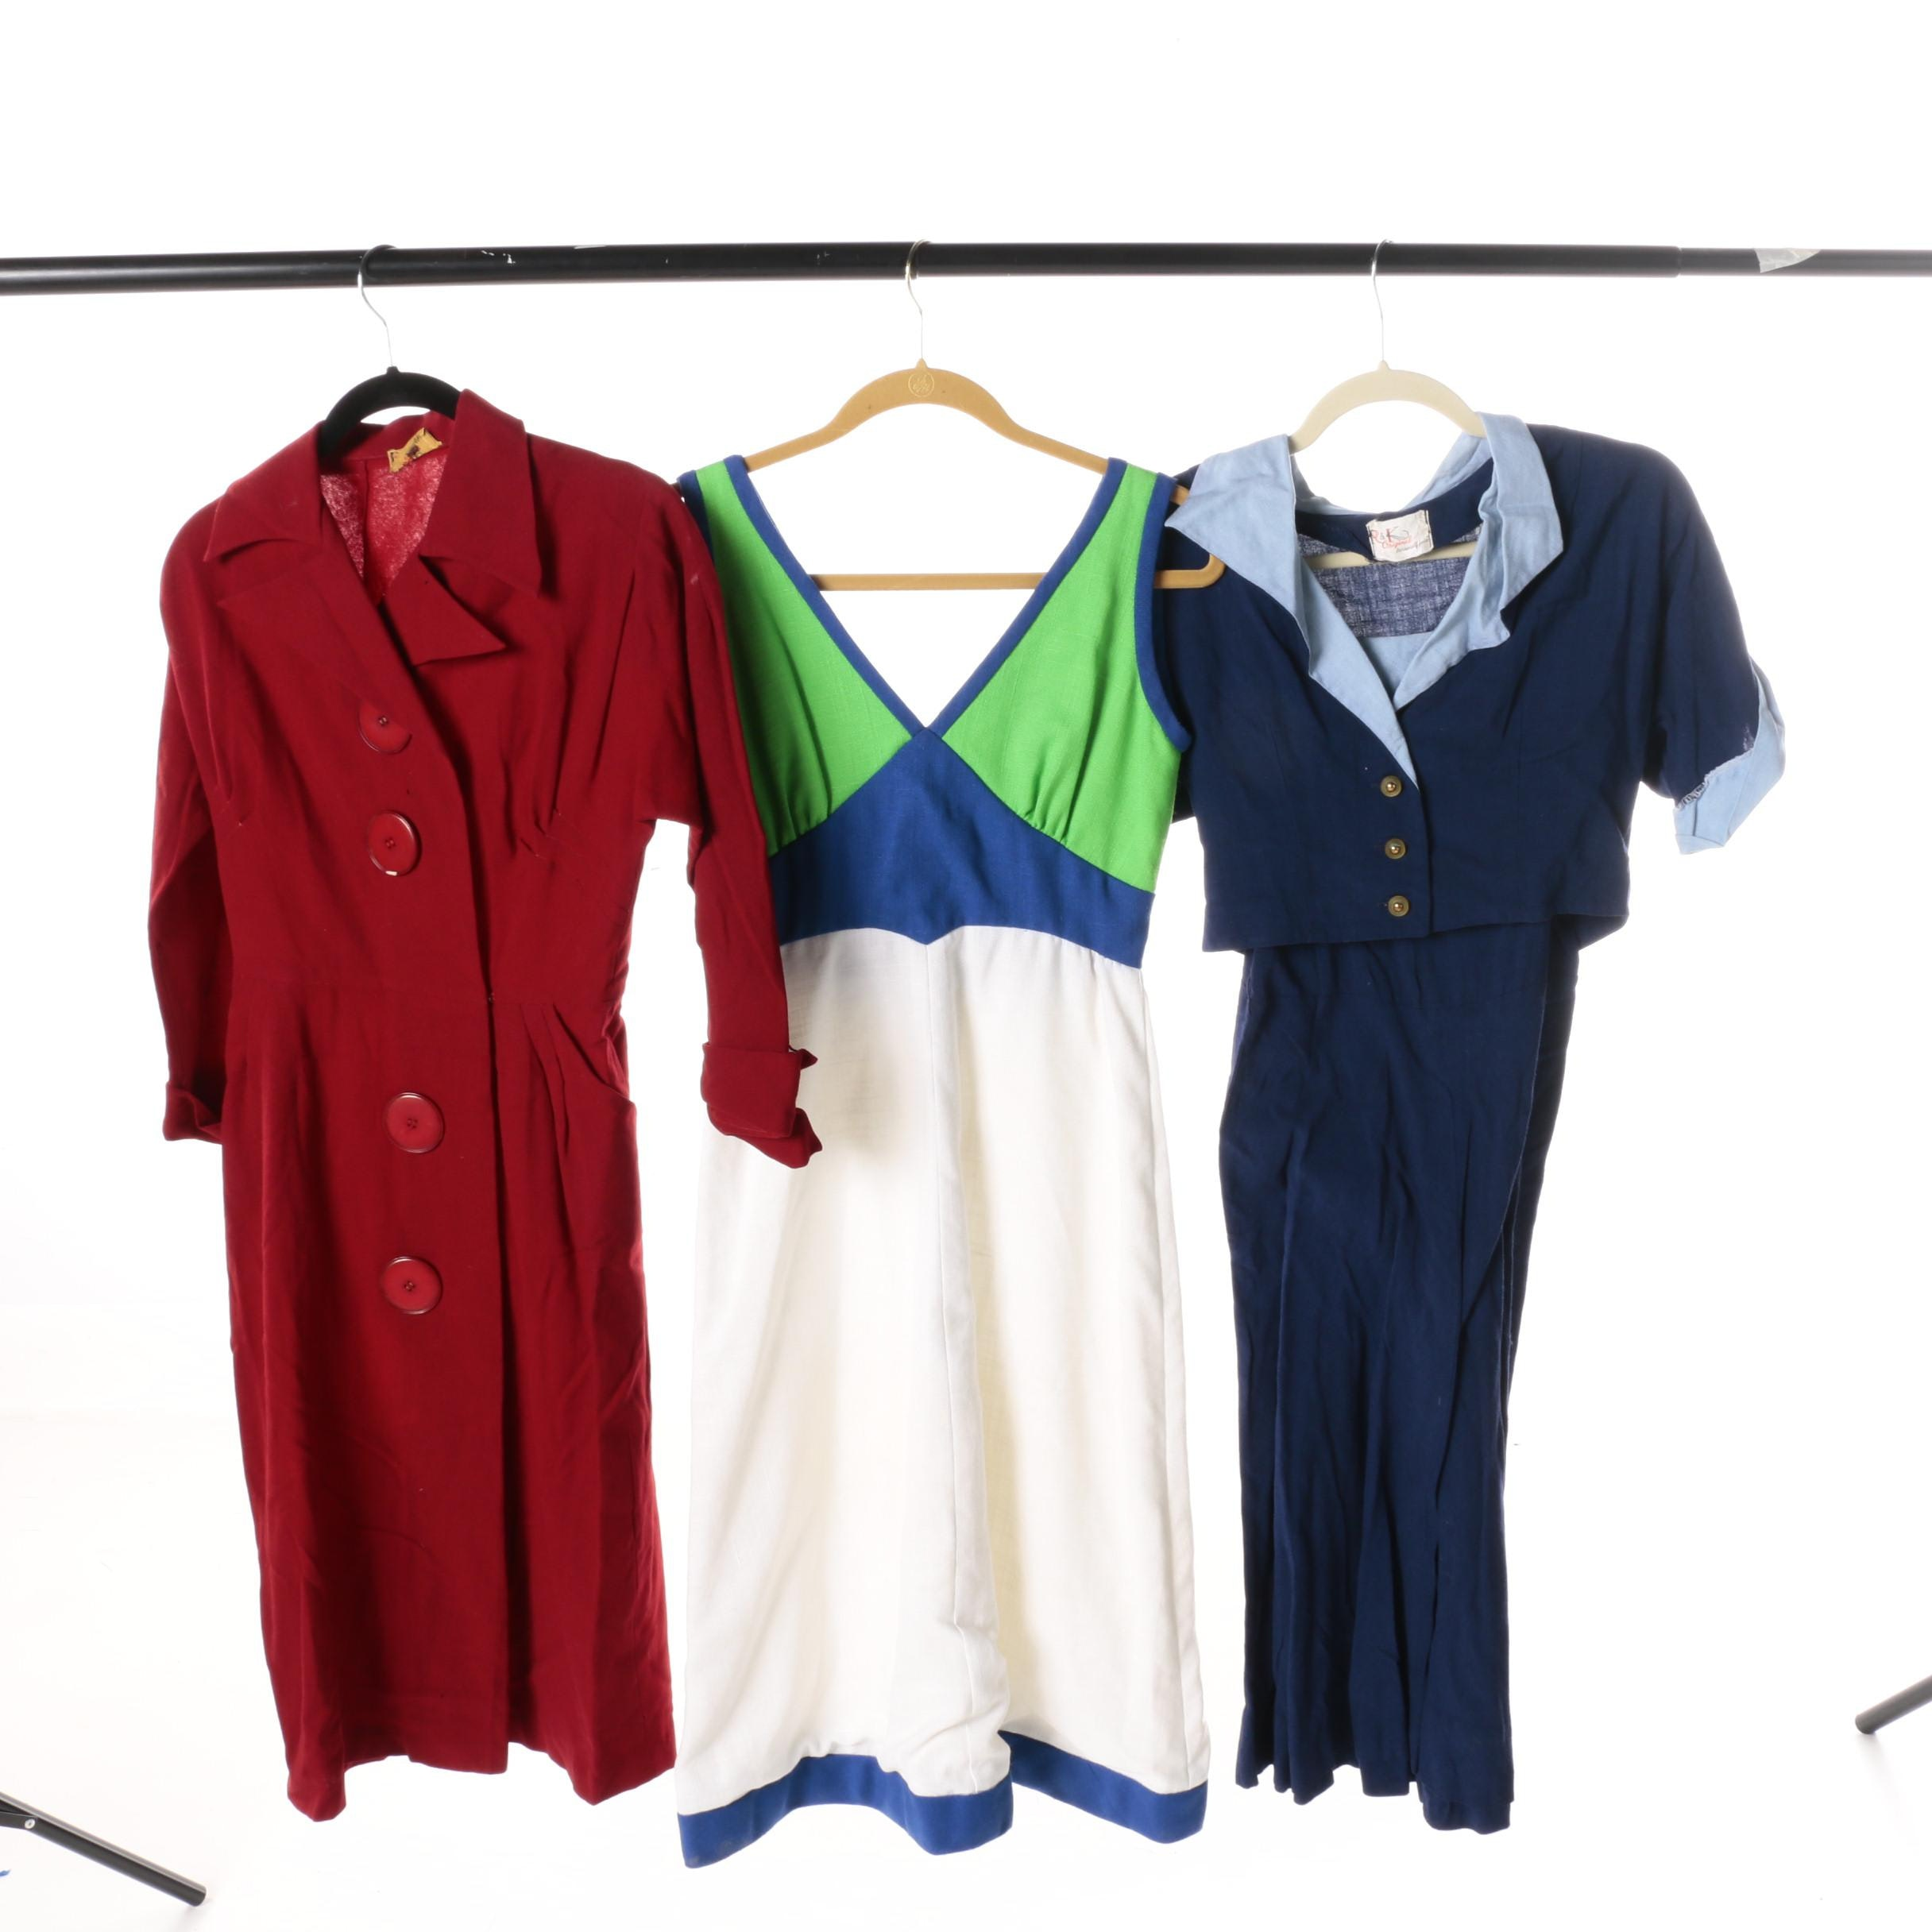 Women's Vintage Solid and Color Block Dresses